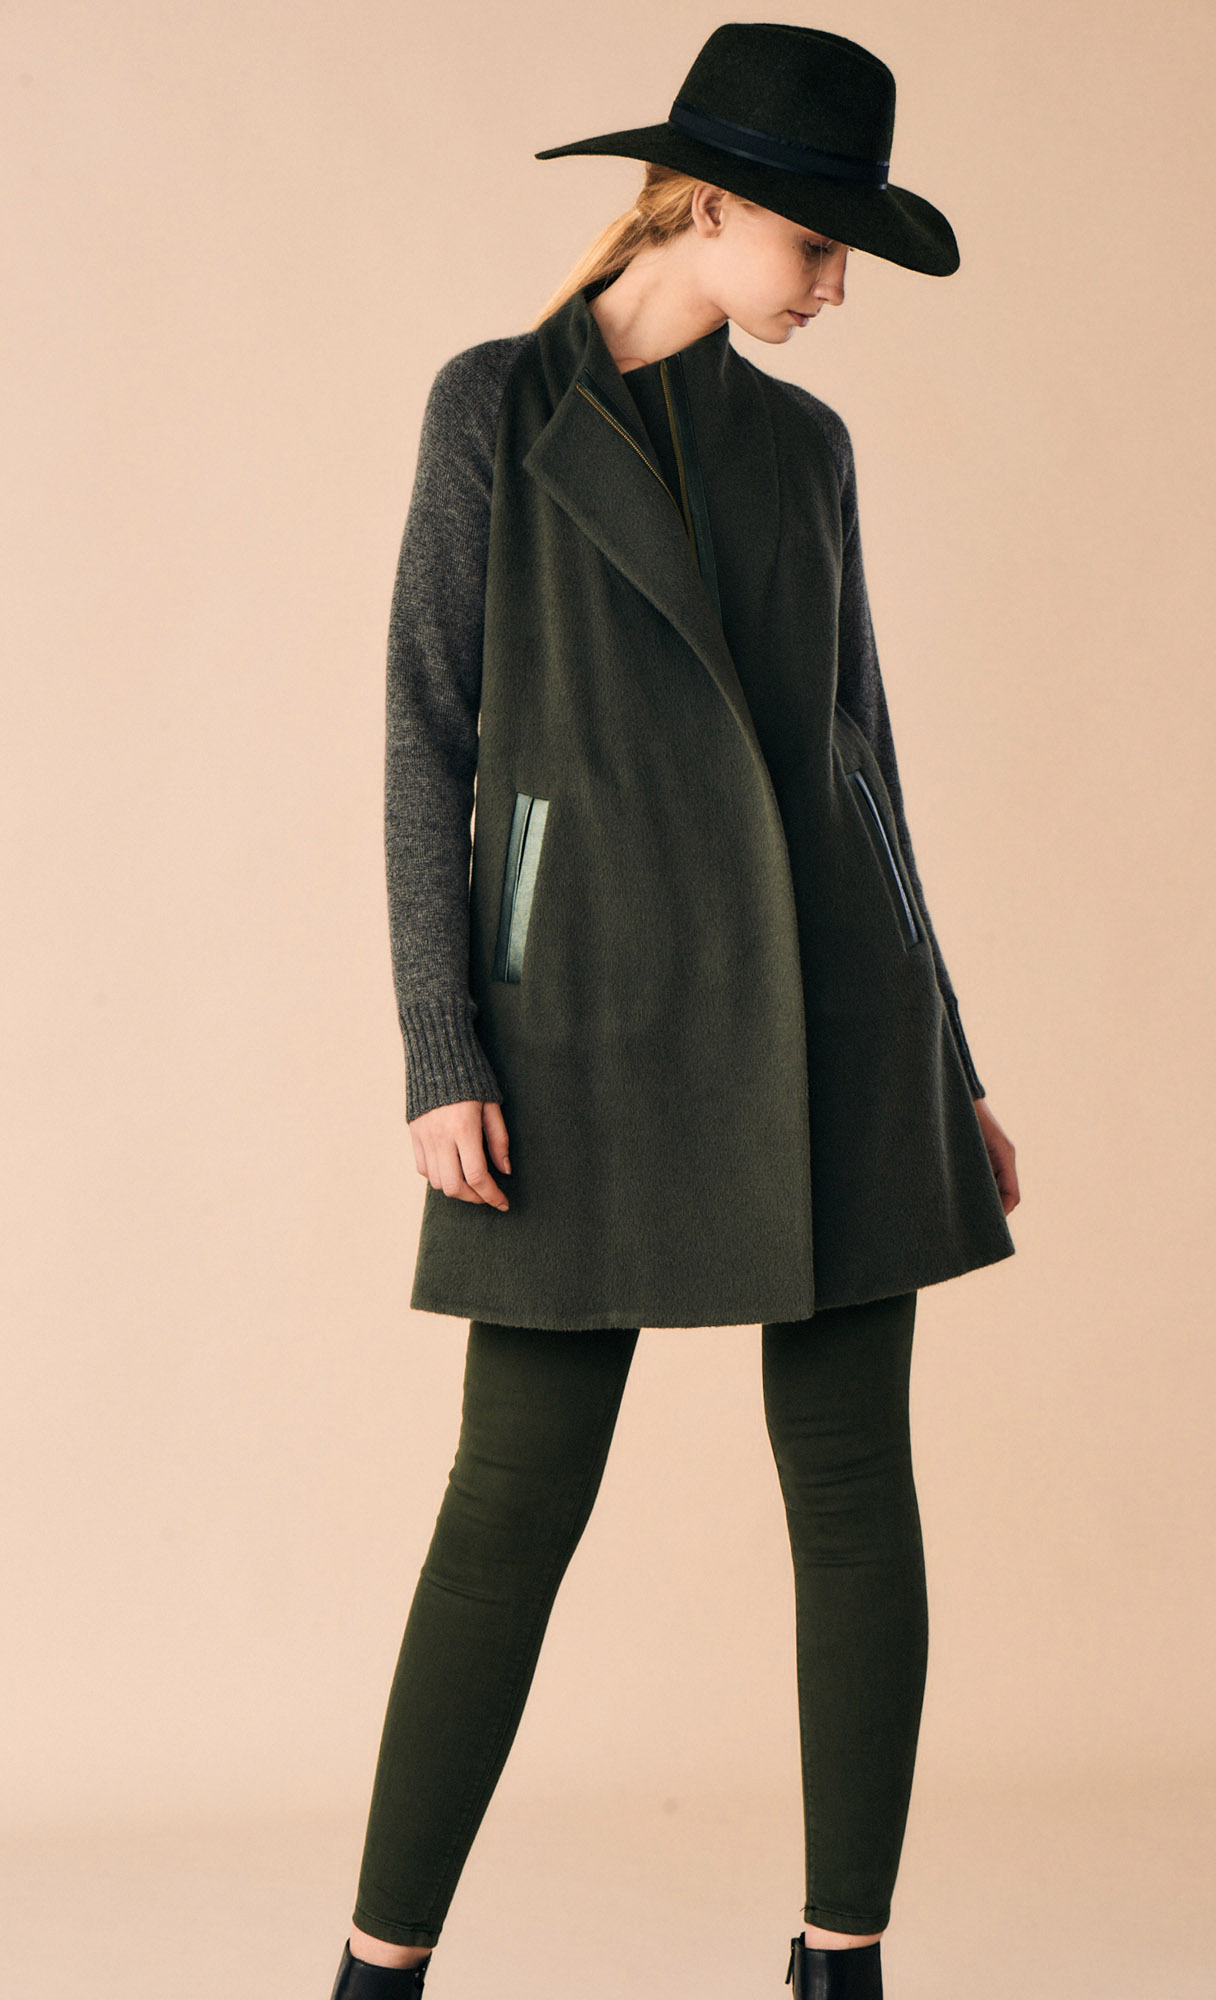 JACKET ARIANNA AT-338   Colors:  rosemary green   Sizes: XS, S, M, L, XL